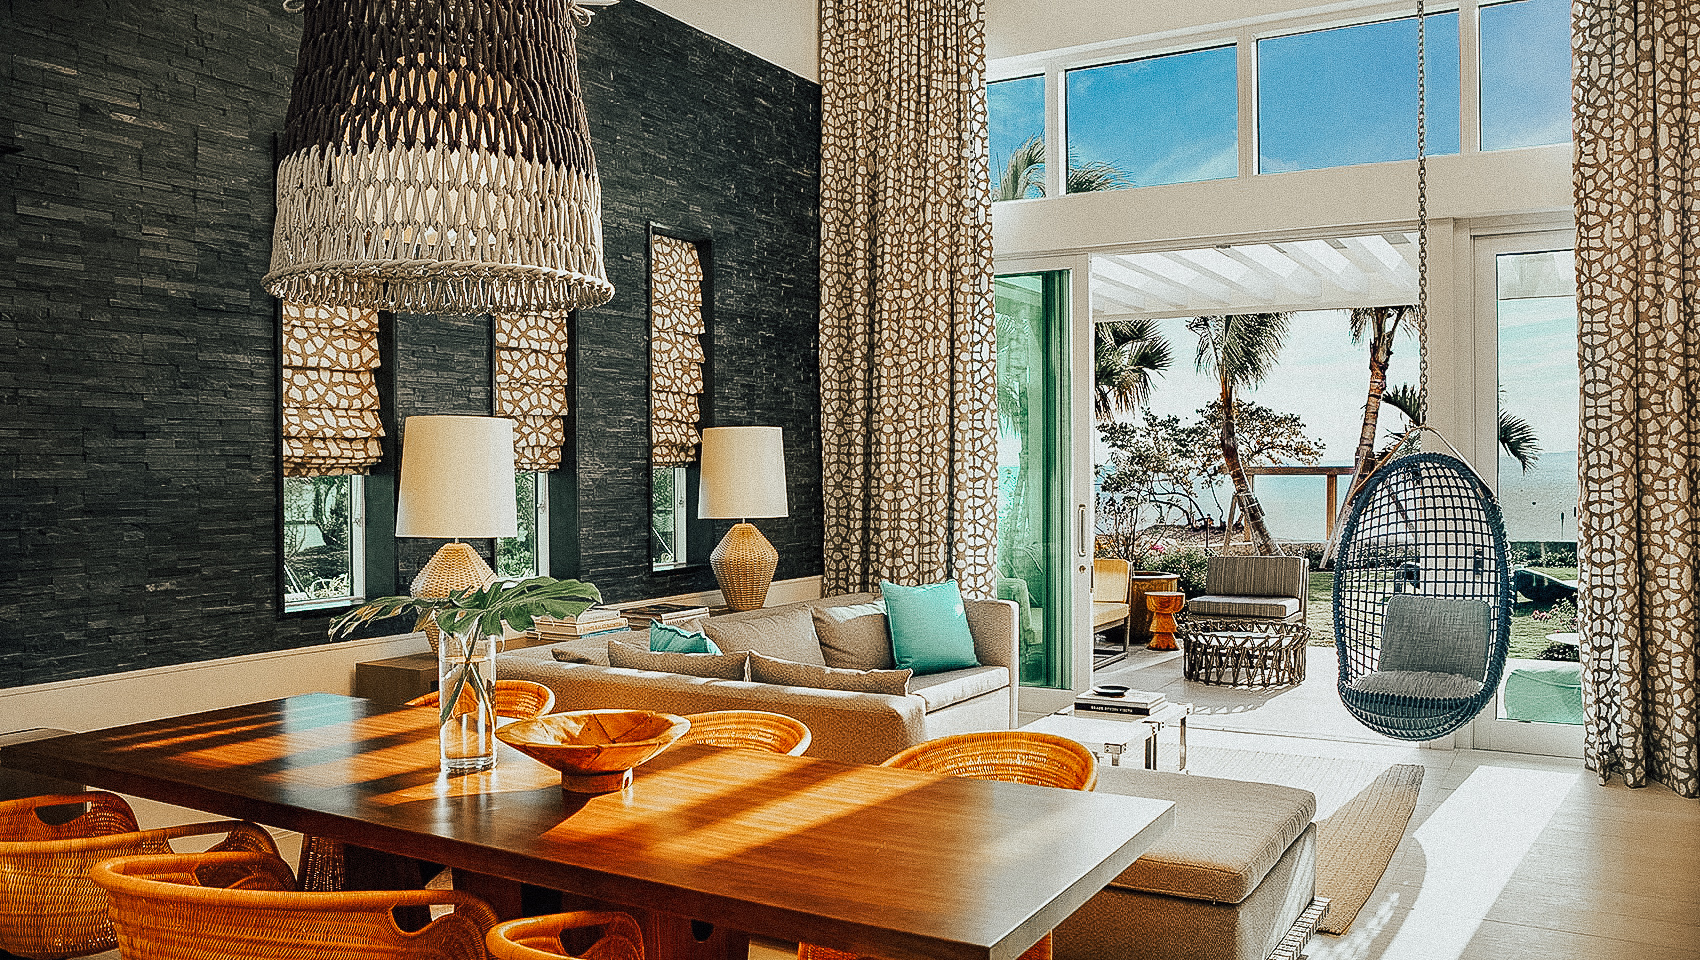 035-beach-bungalow-living-3059-3-revised-8d99d67b.jpg